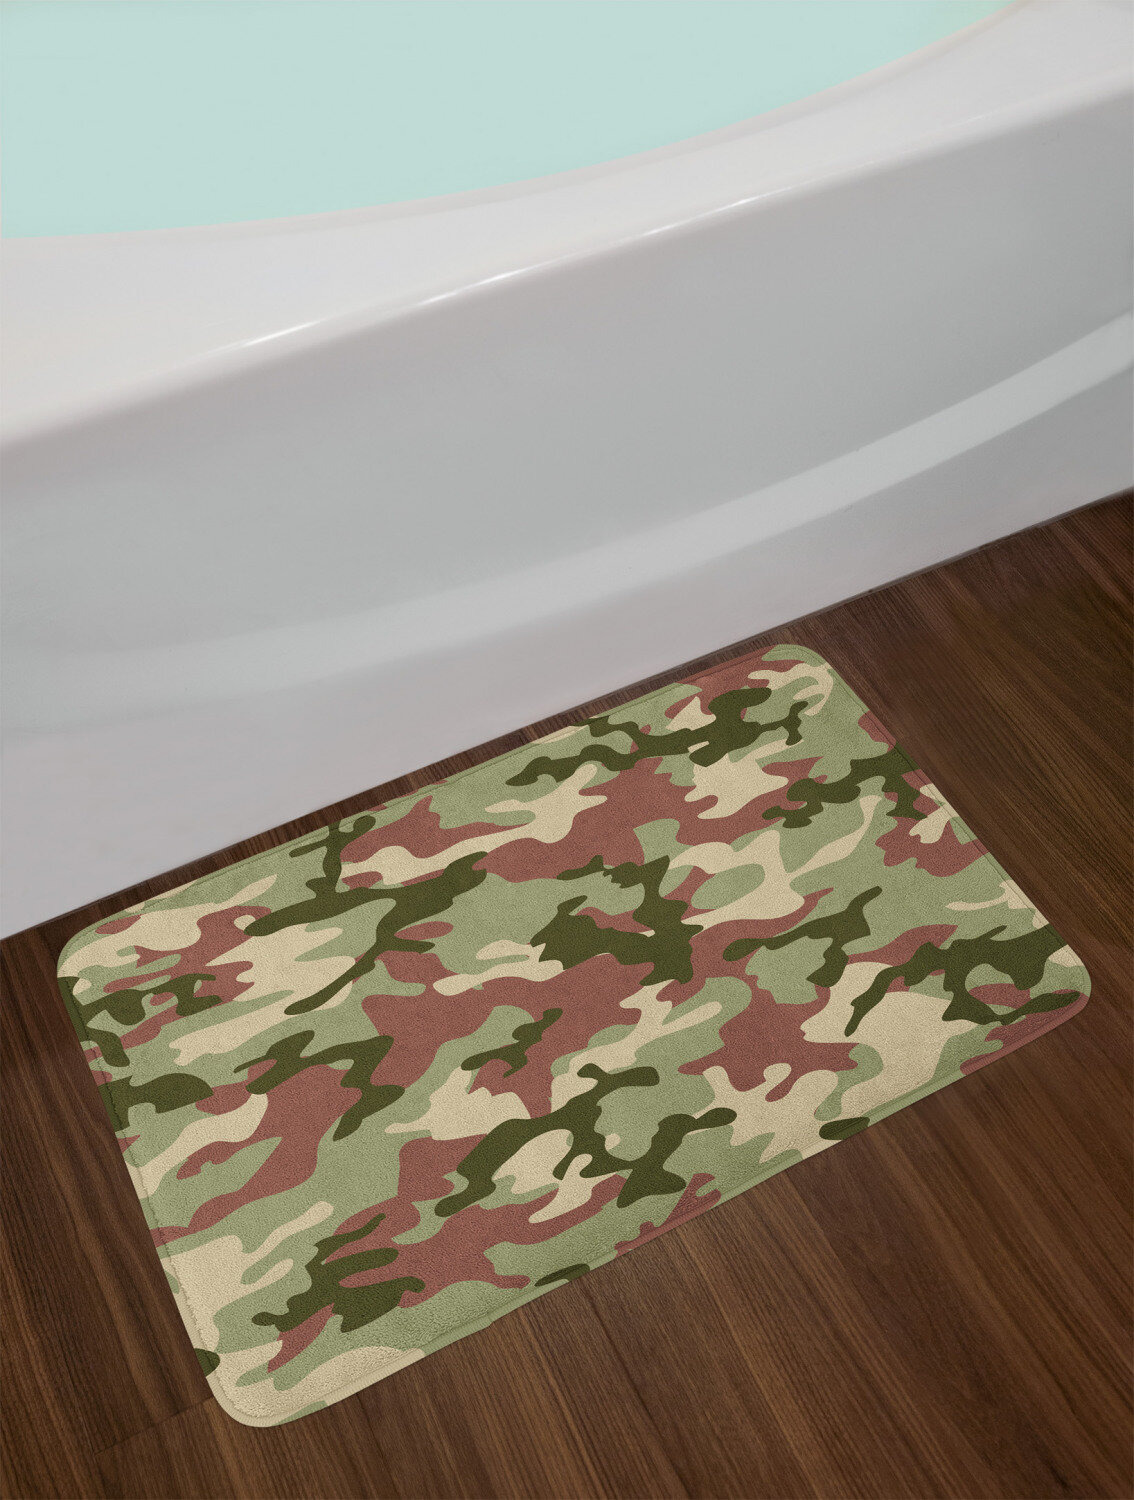 east urban home ambesonne camo bath mat illustrated green camouflage in forest colours hunter theme plush bathroom decor mat with non slip backing 295 x 175 dark green army green ebmk2673